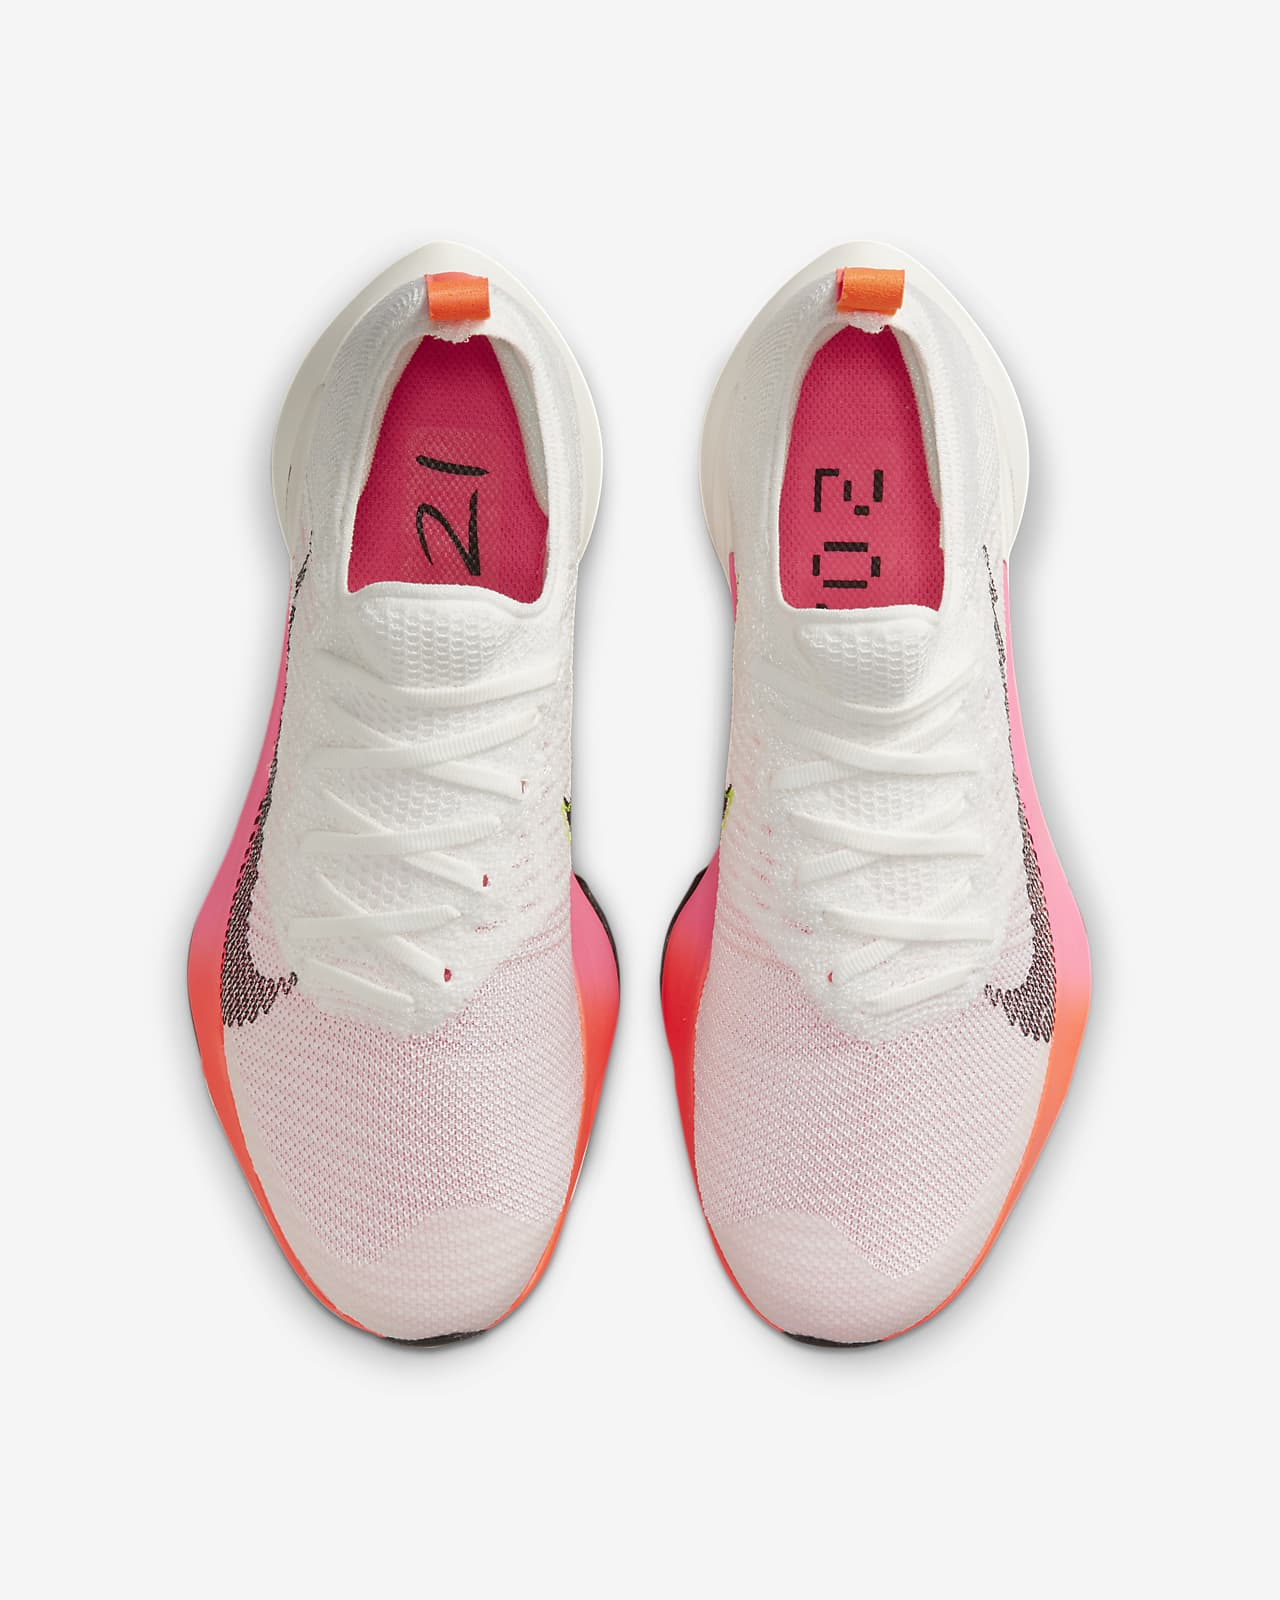 Nike Air Zoom Tempo NEXT% Flyknit Women's Road Running Shoes